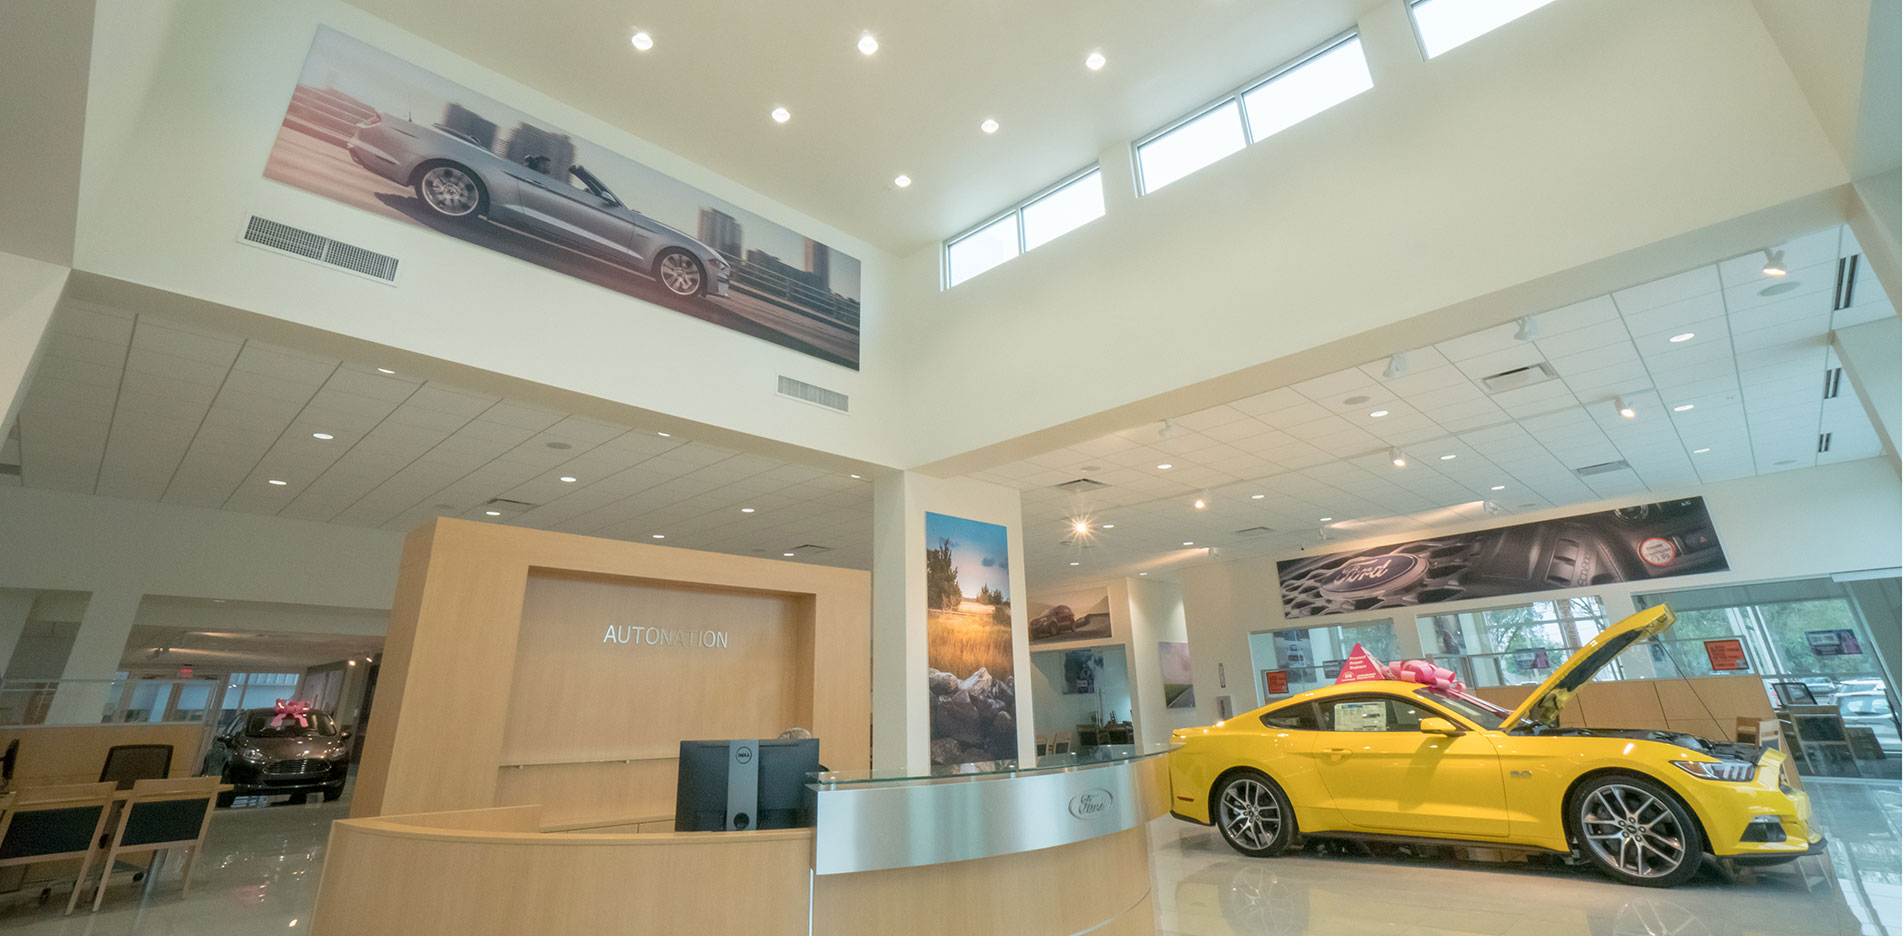 Showroom atrium with receptionist desk, and high windows